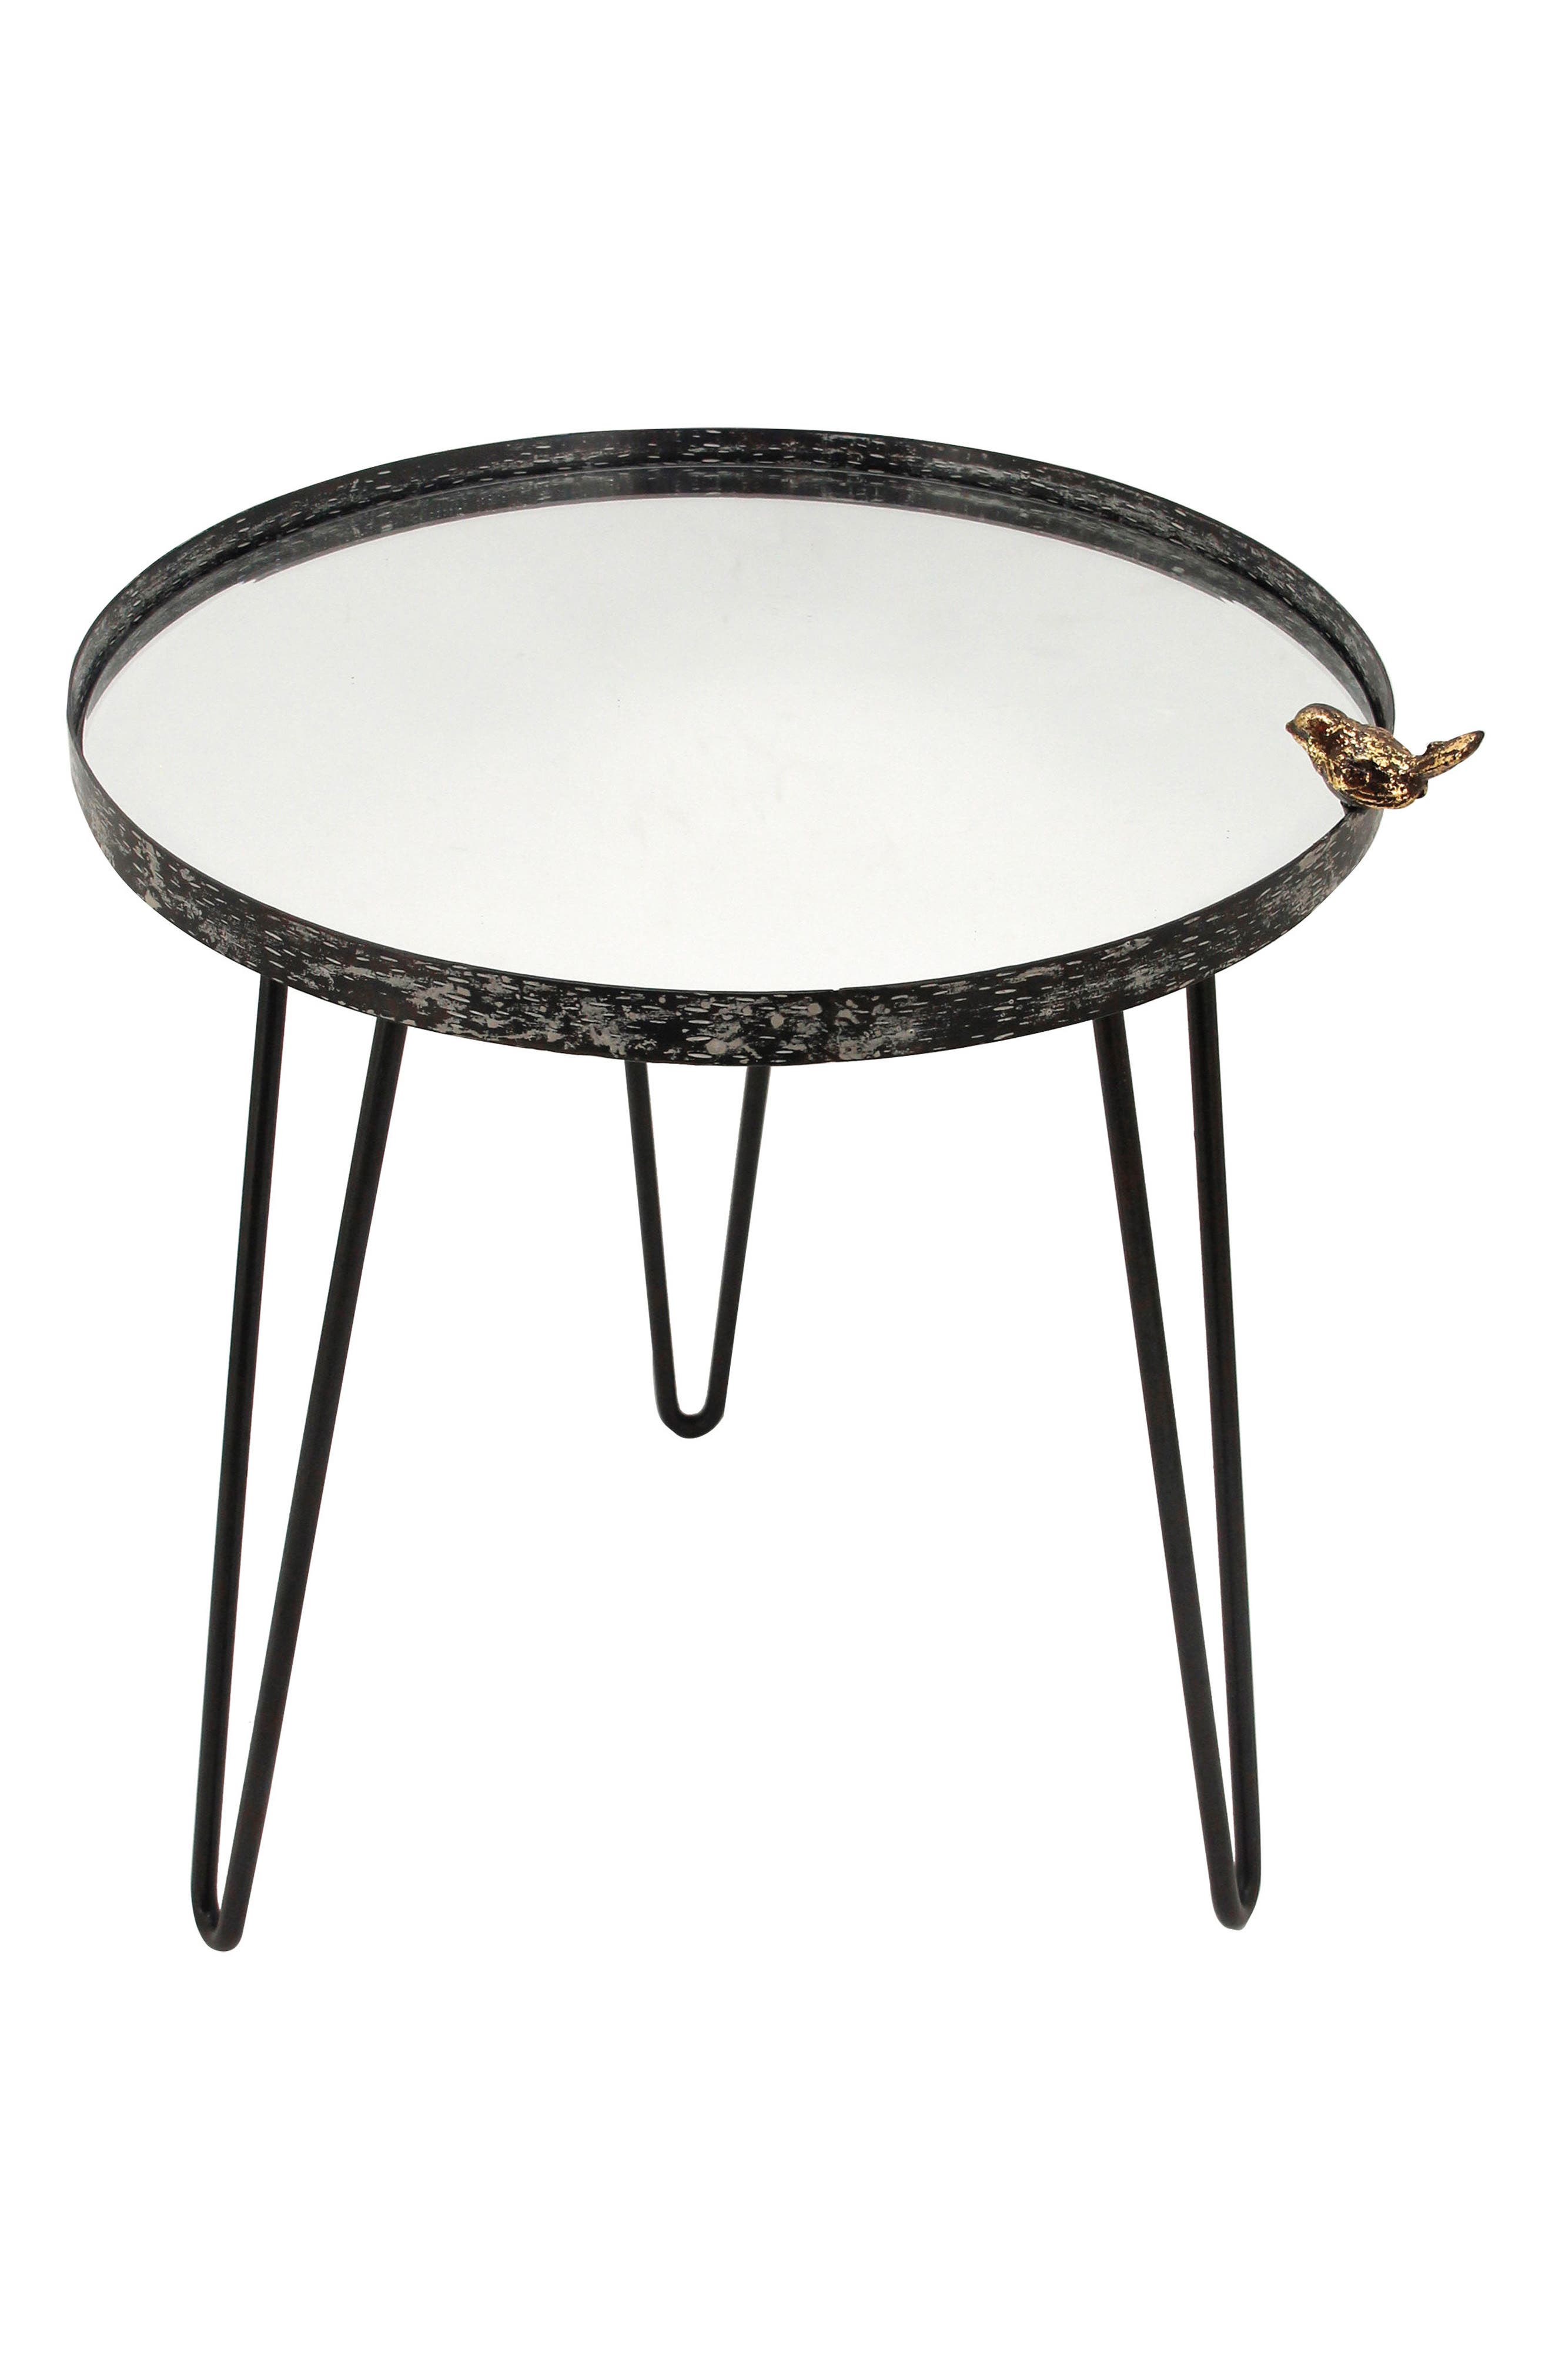 Main Image - Foreside Bird Mirror Side Table